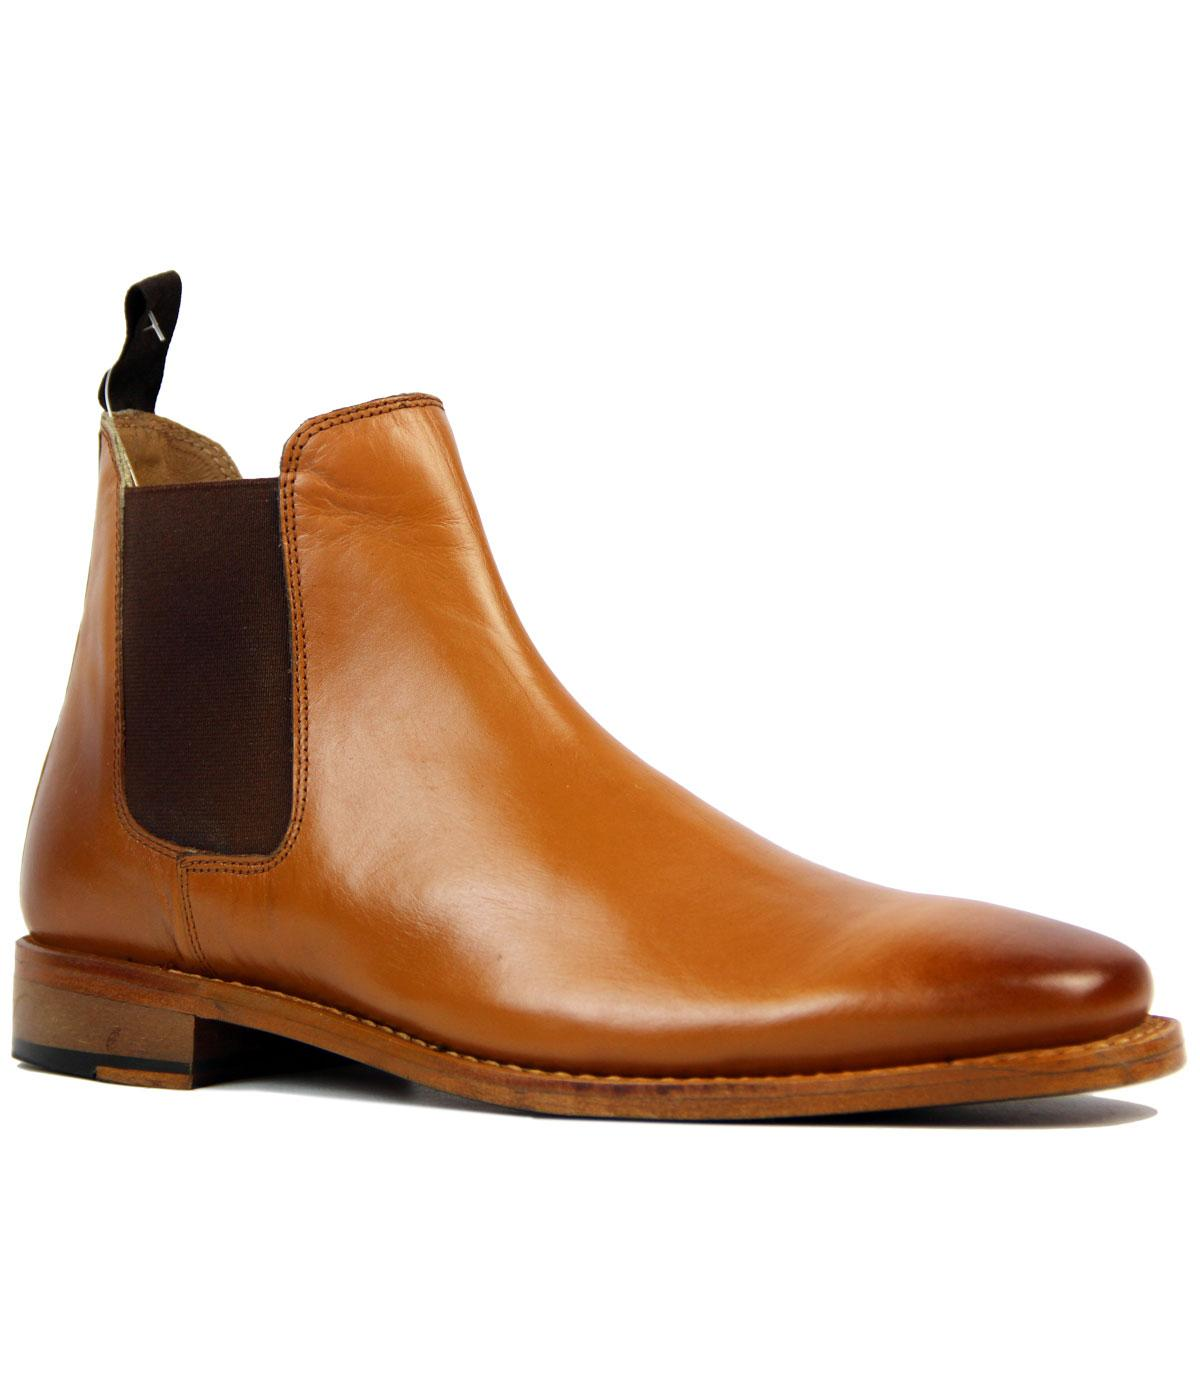 new authentic purchase authentic real deal KENSINGTON 60s Mod Goodyear Welted Chelsea Boots